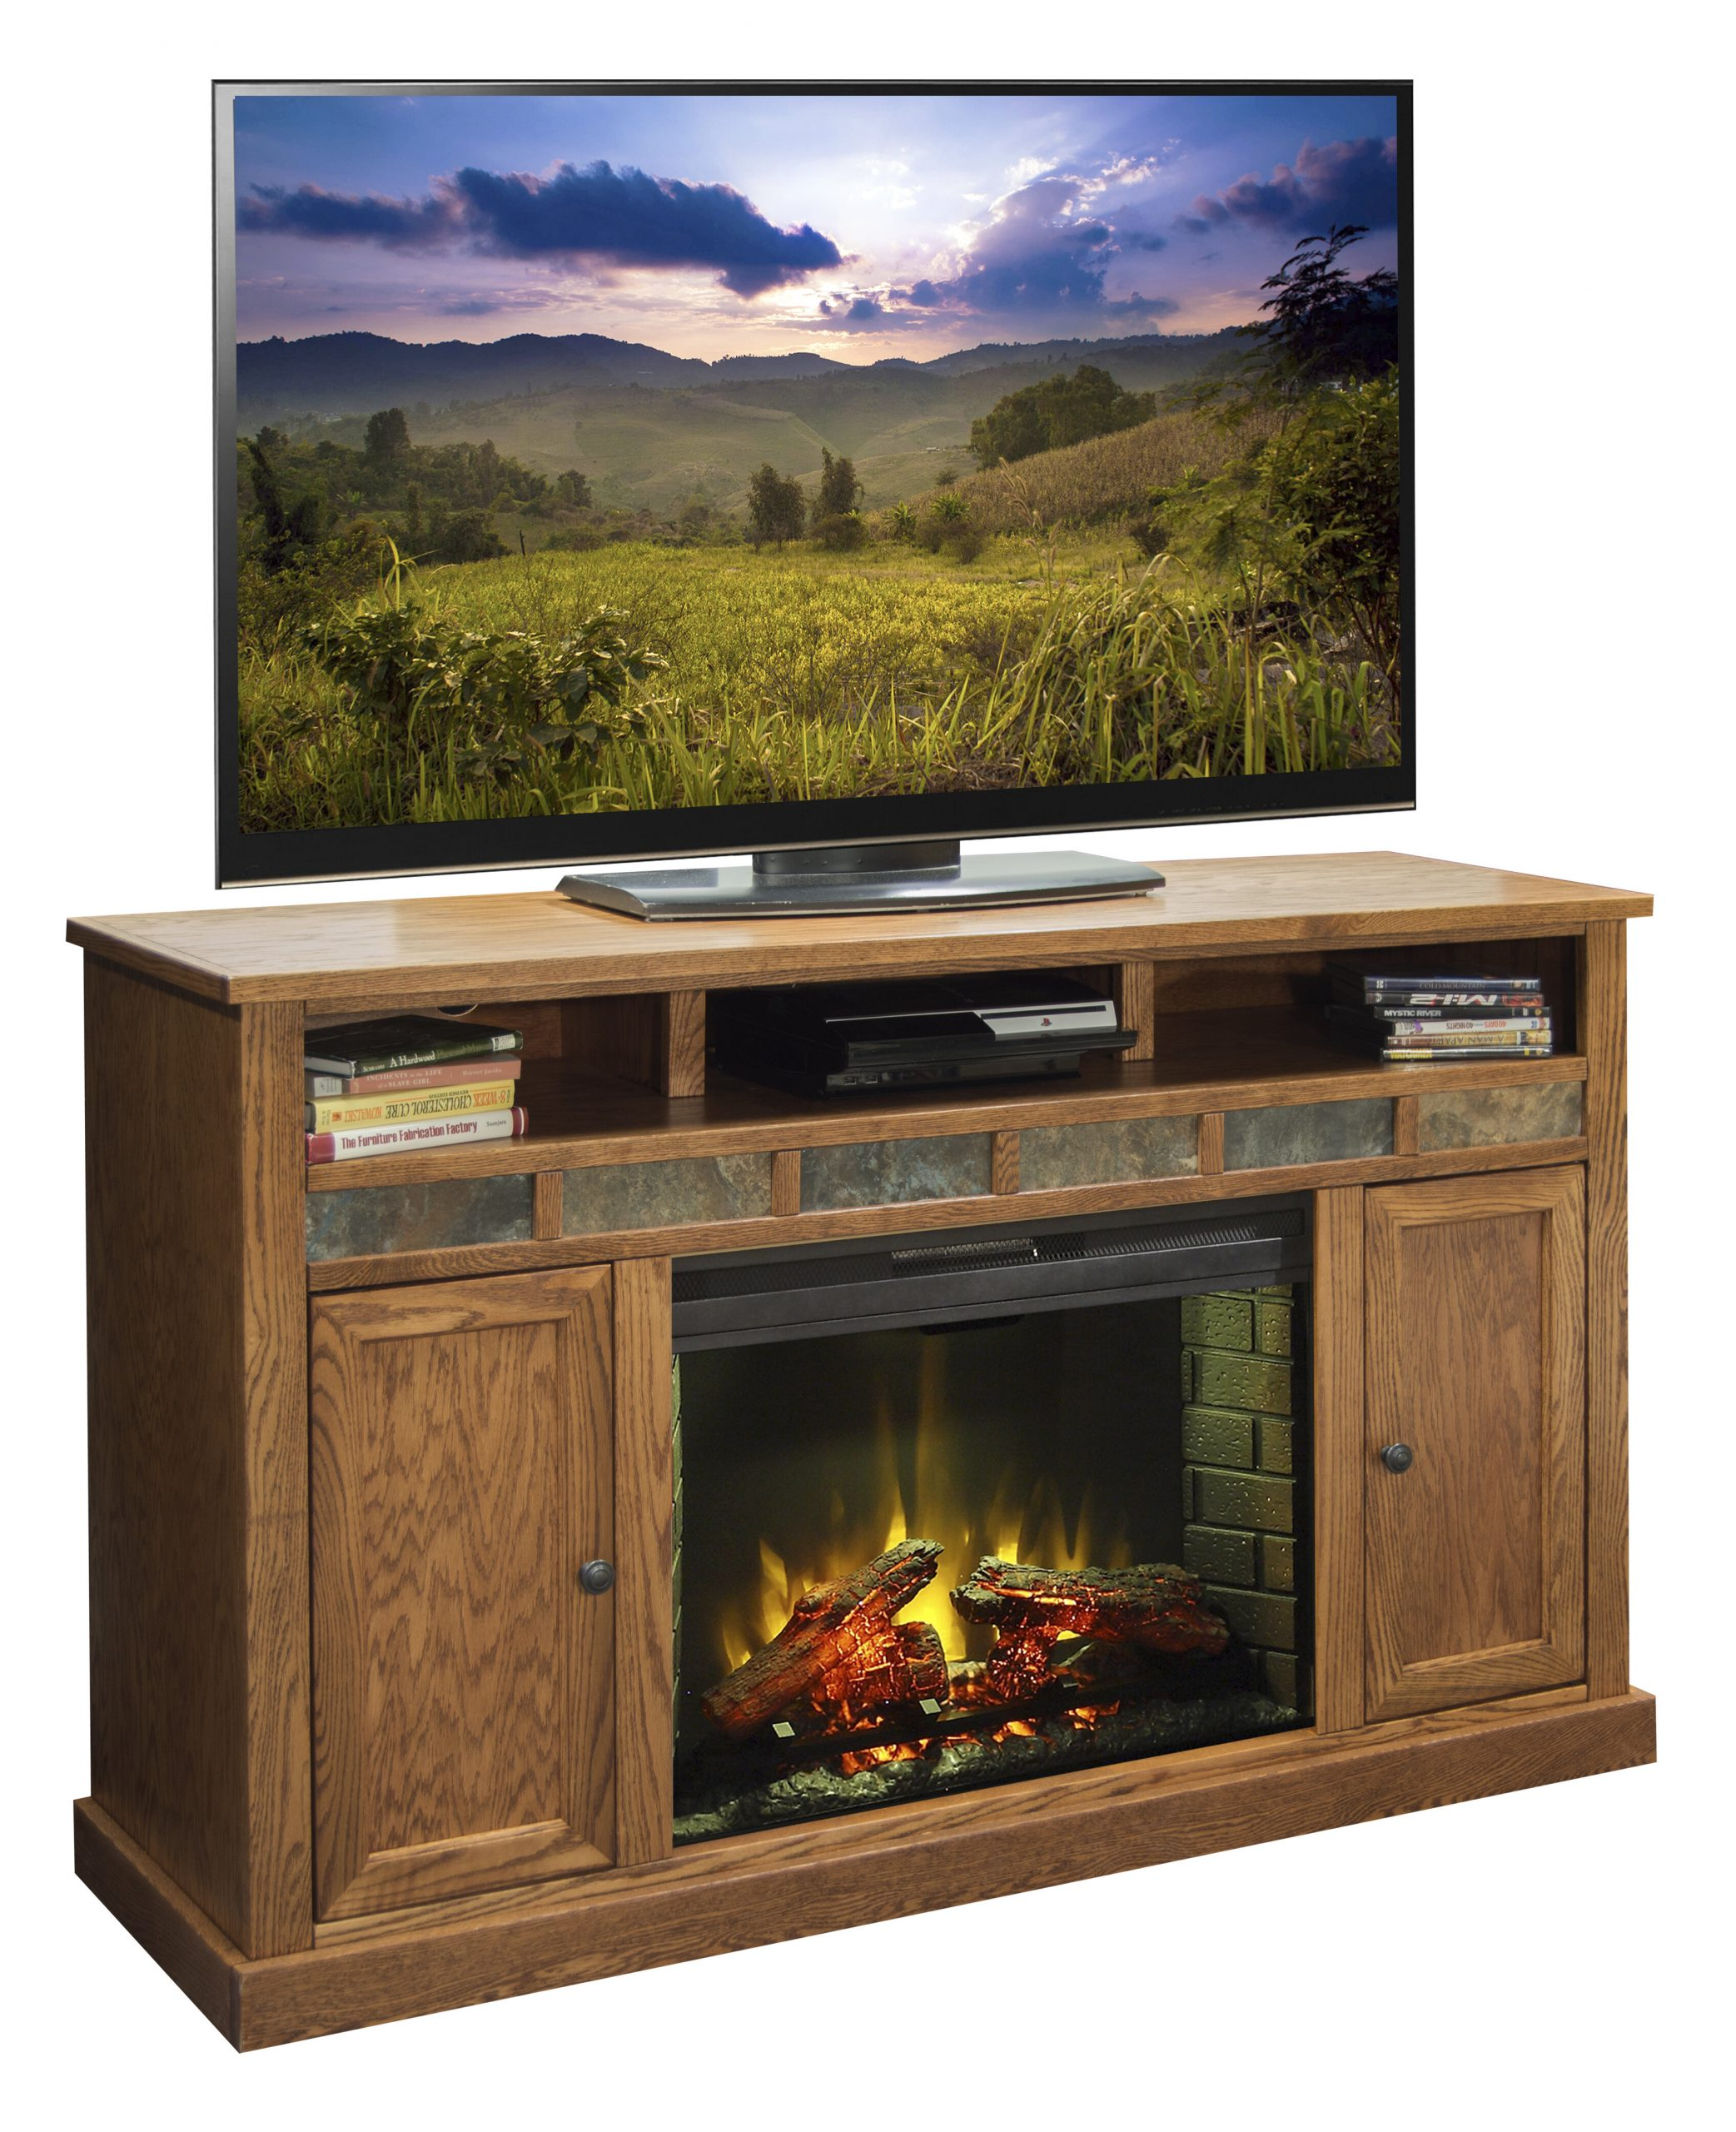 legends furniture oak creek tv stand for tvs up to 70 with electric fireplace included lfn1822